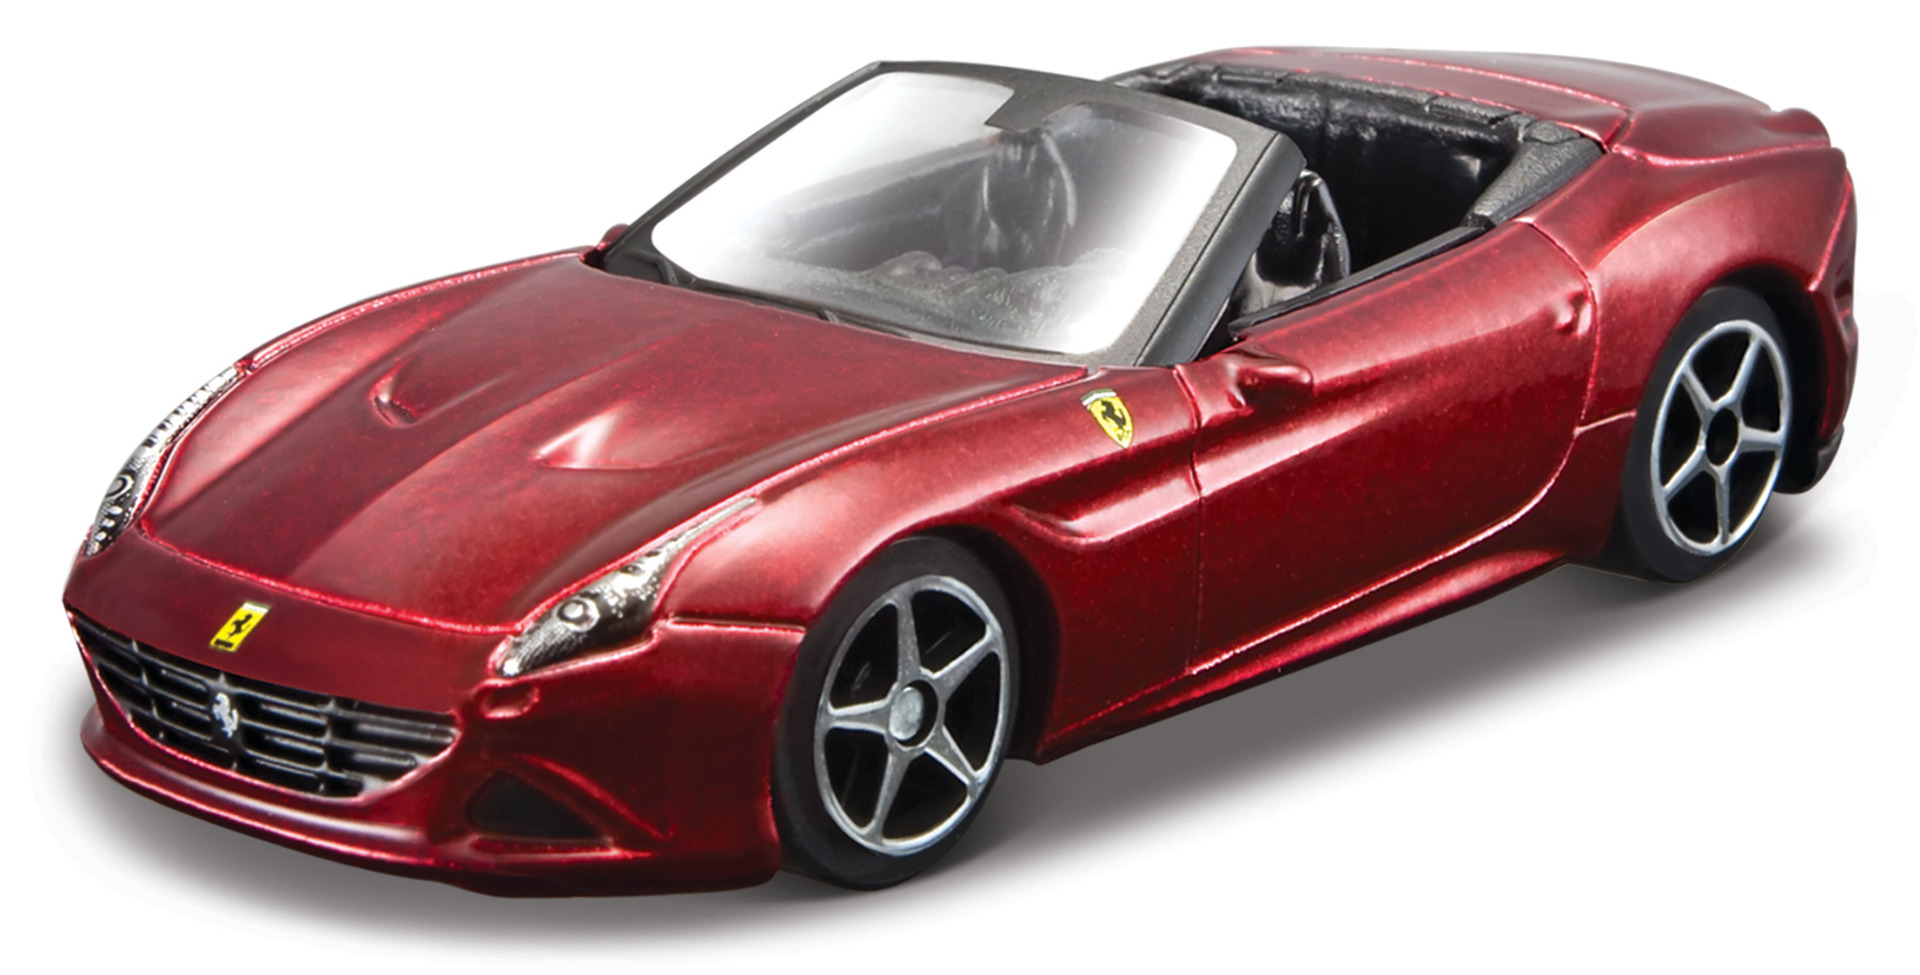 Ferrari California T Open Top Race & Play Scale 1:64 (Red/Vermelho)